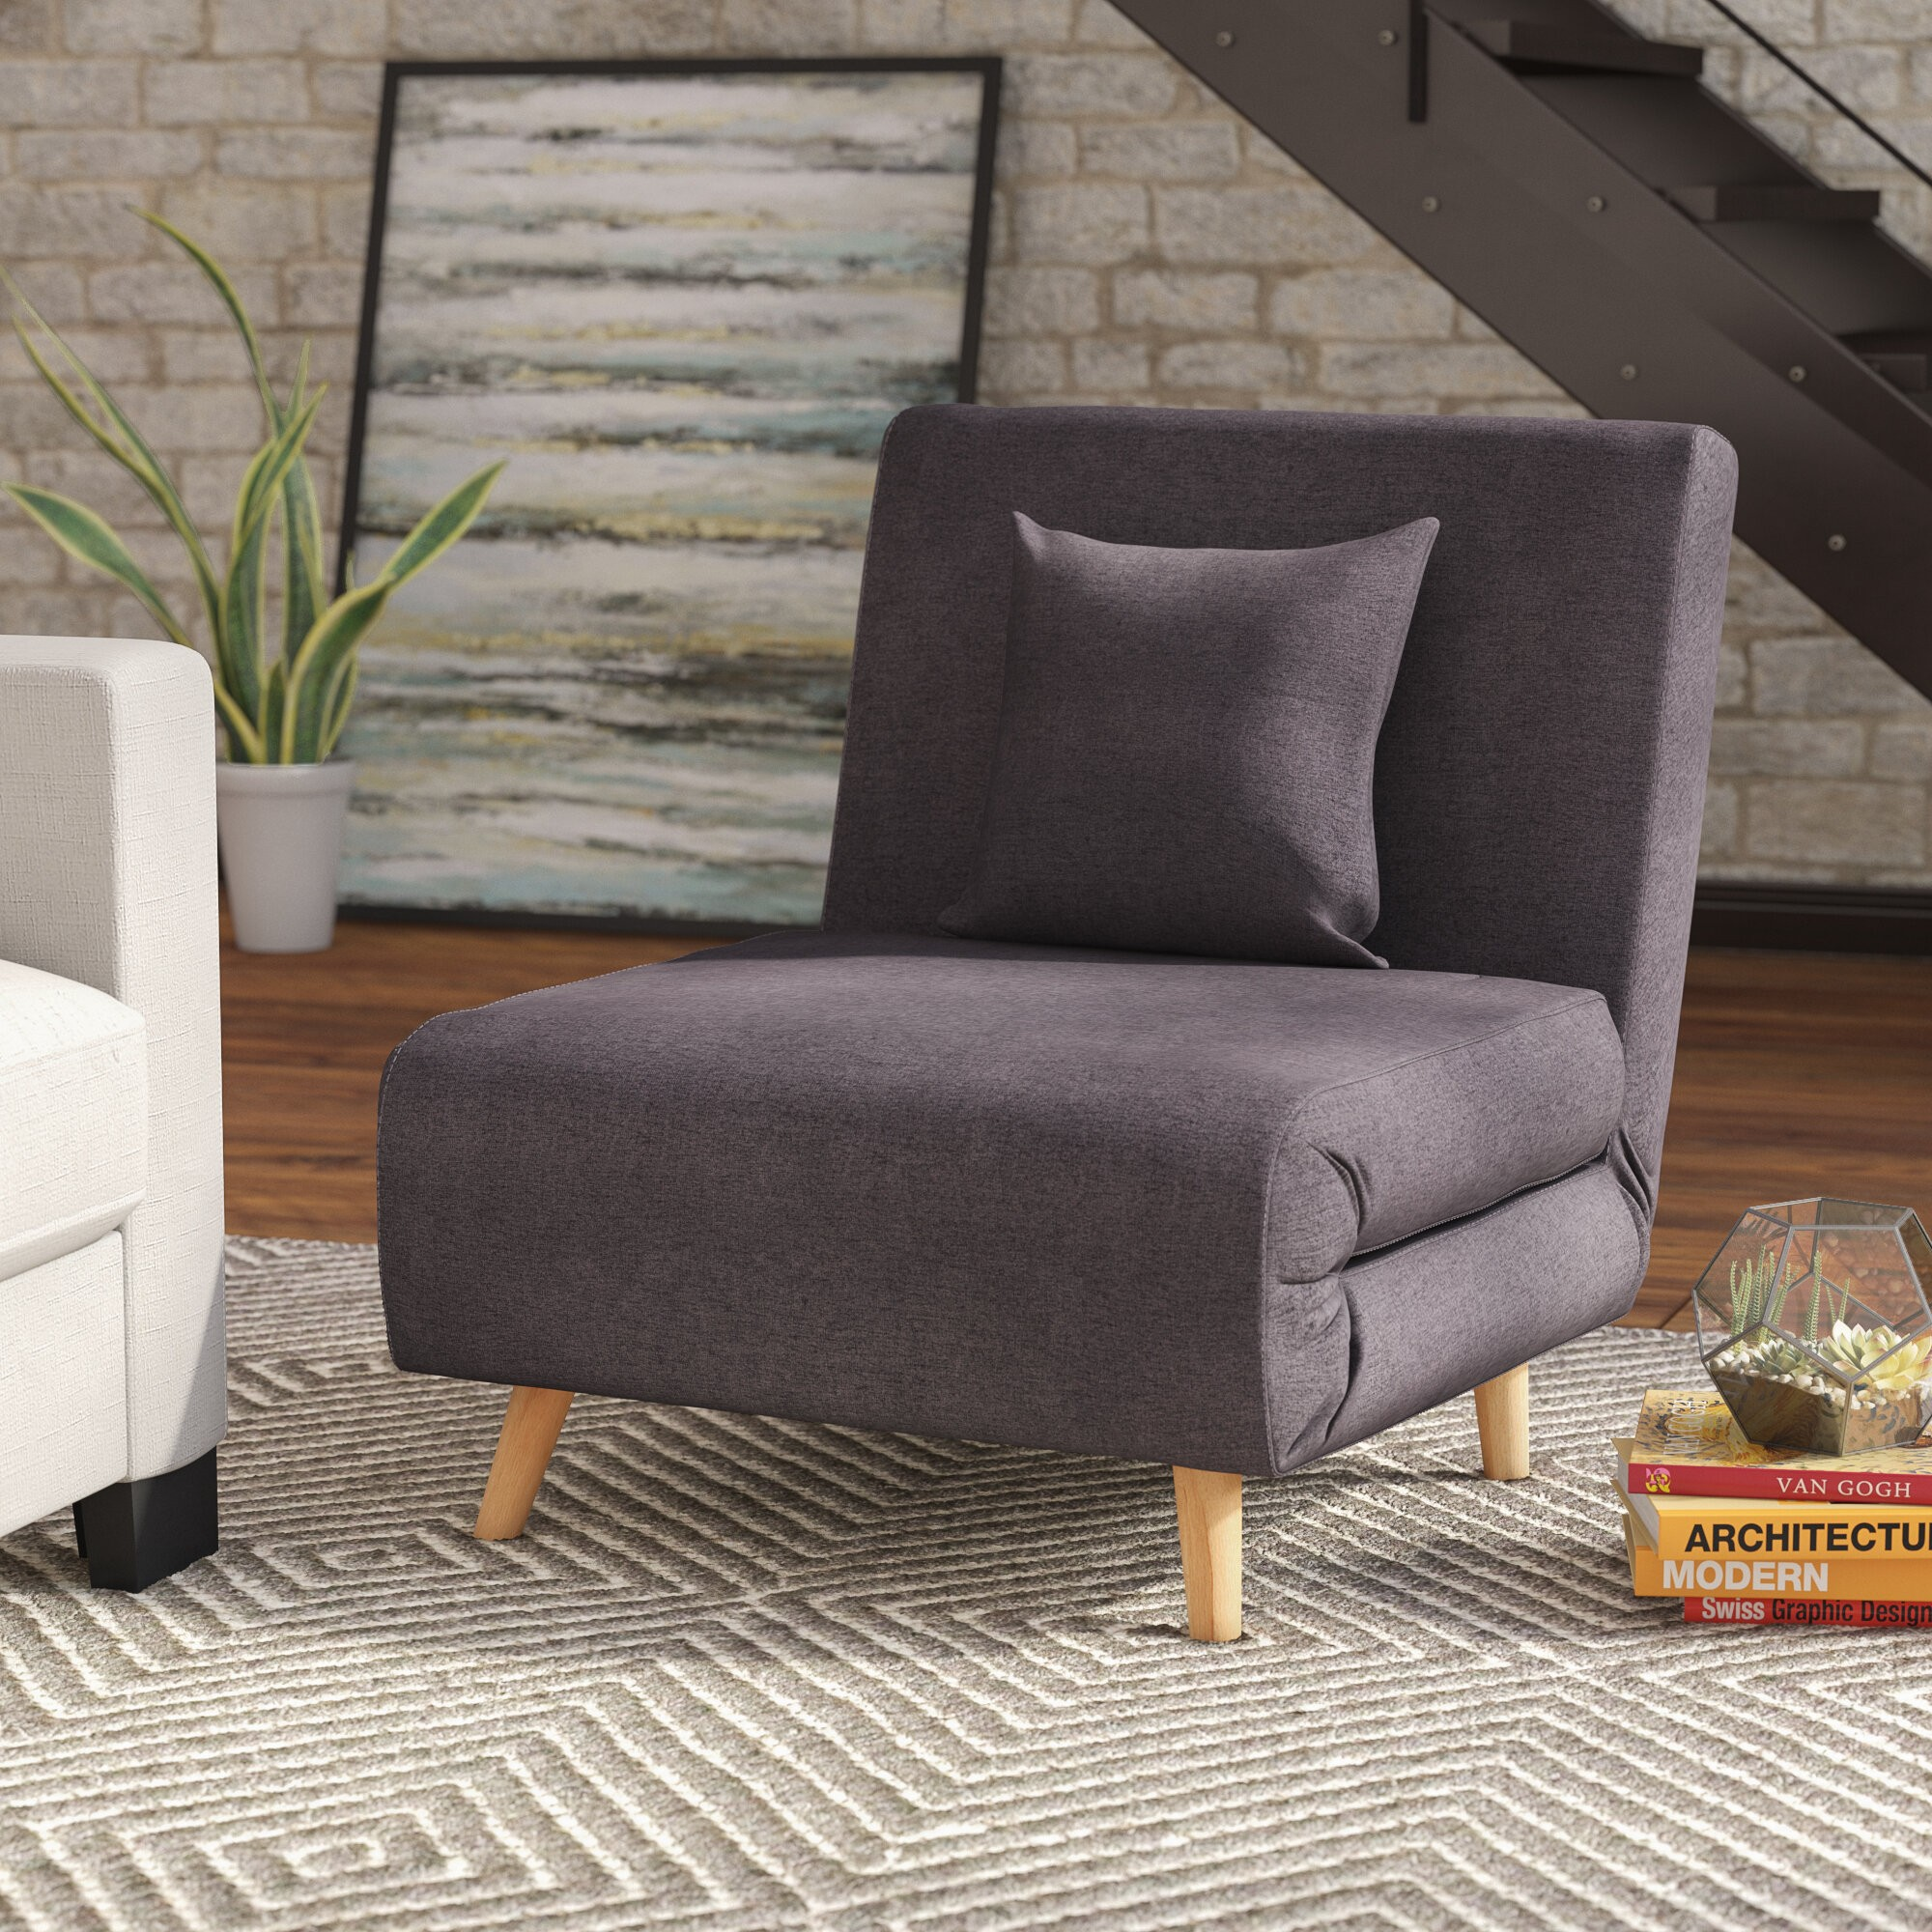 10 Best Convertible Chairs For 2021 Ideas On Foter